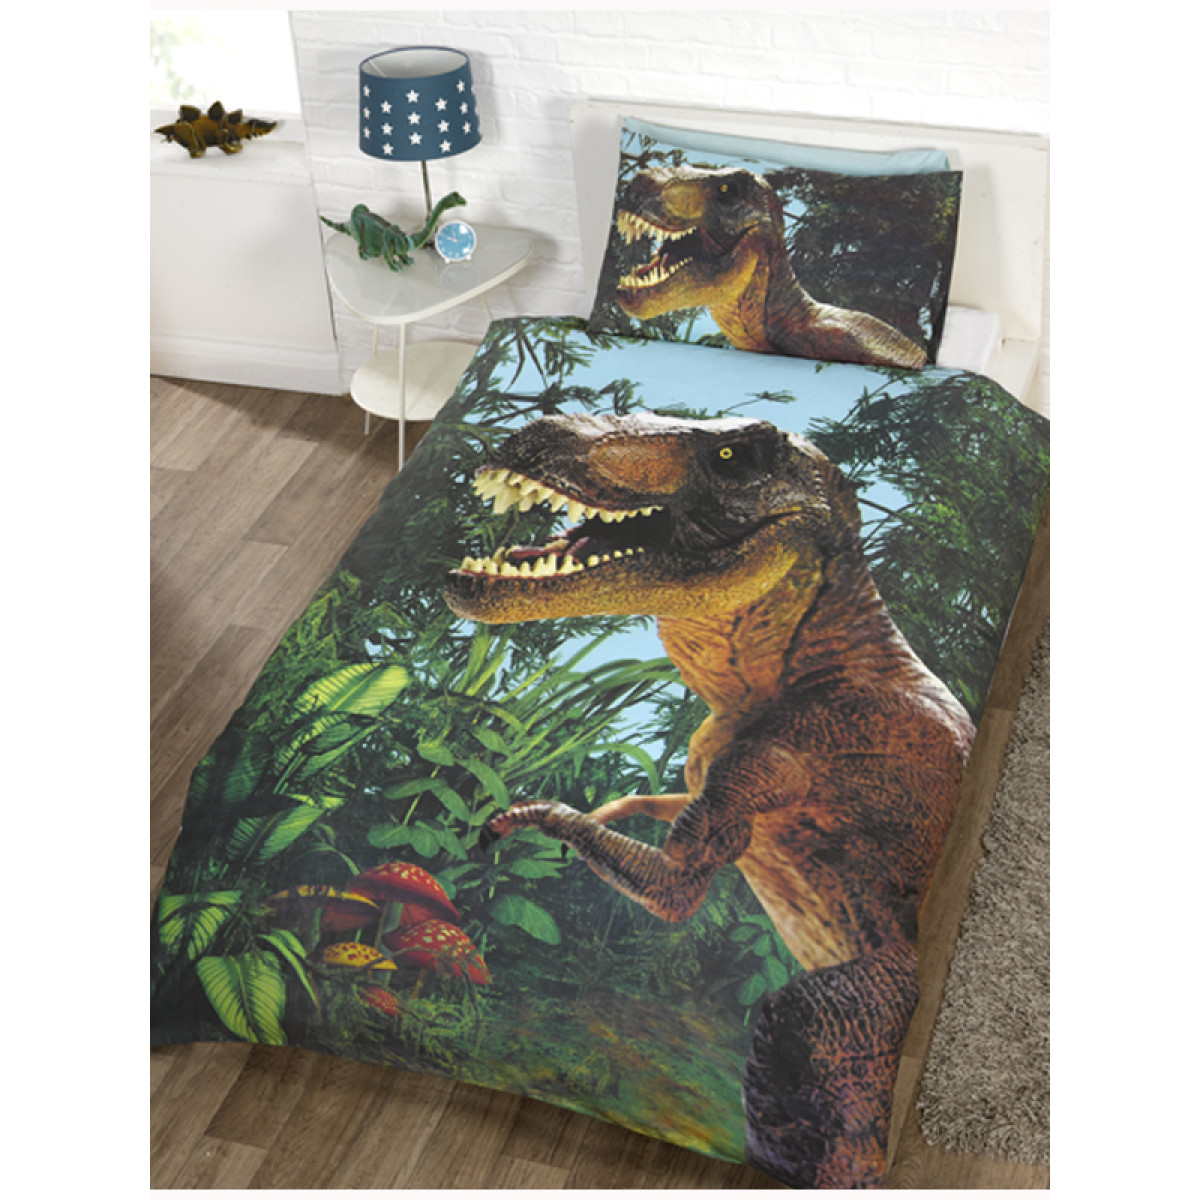 Jurassic t rex dinosaur single duvet cover set bedroom for T rex bedroom decor